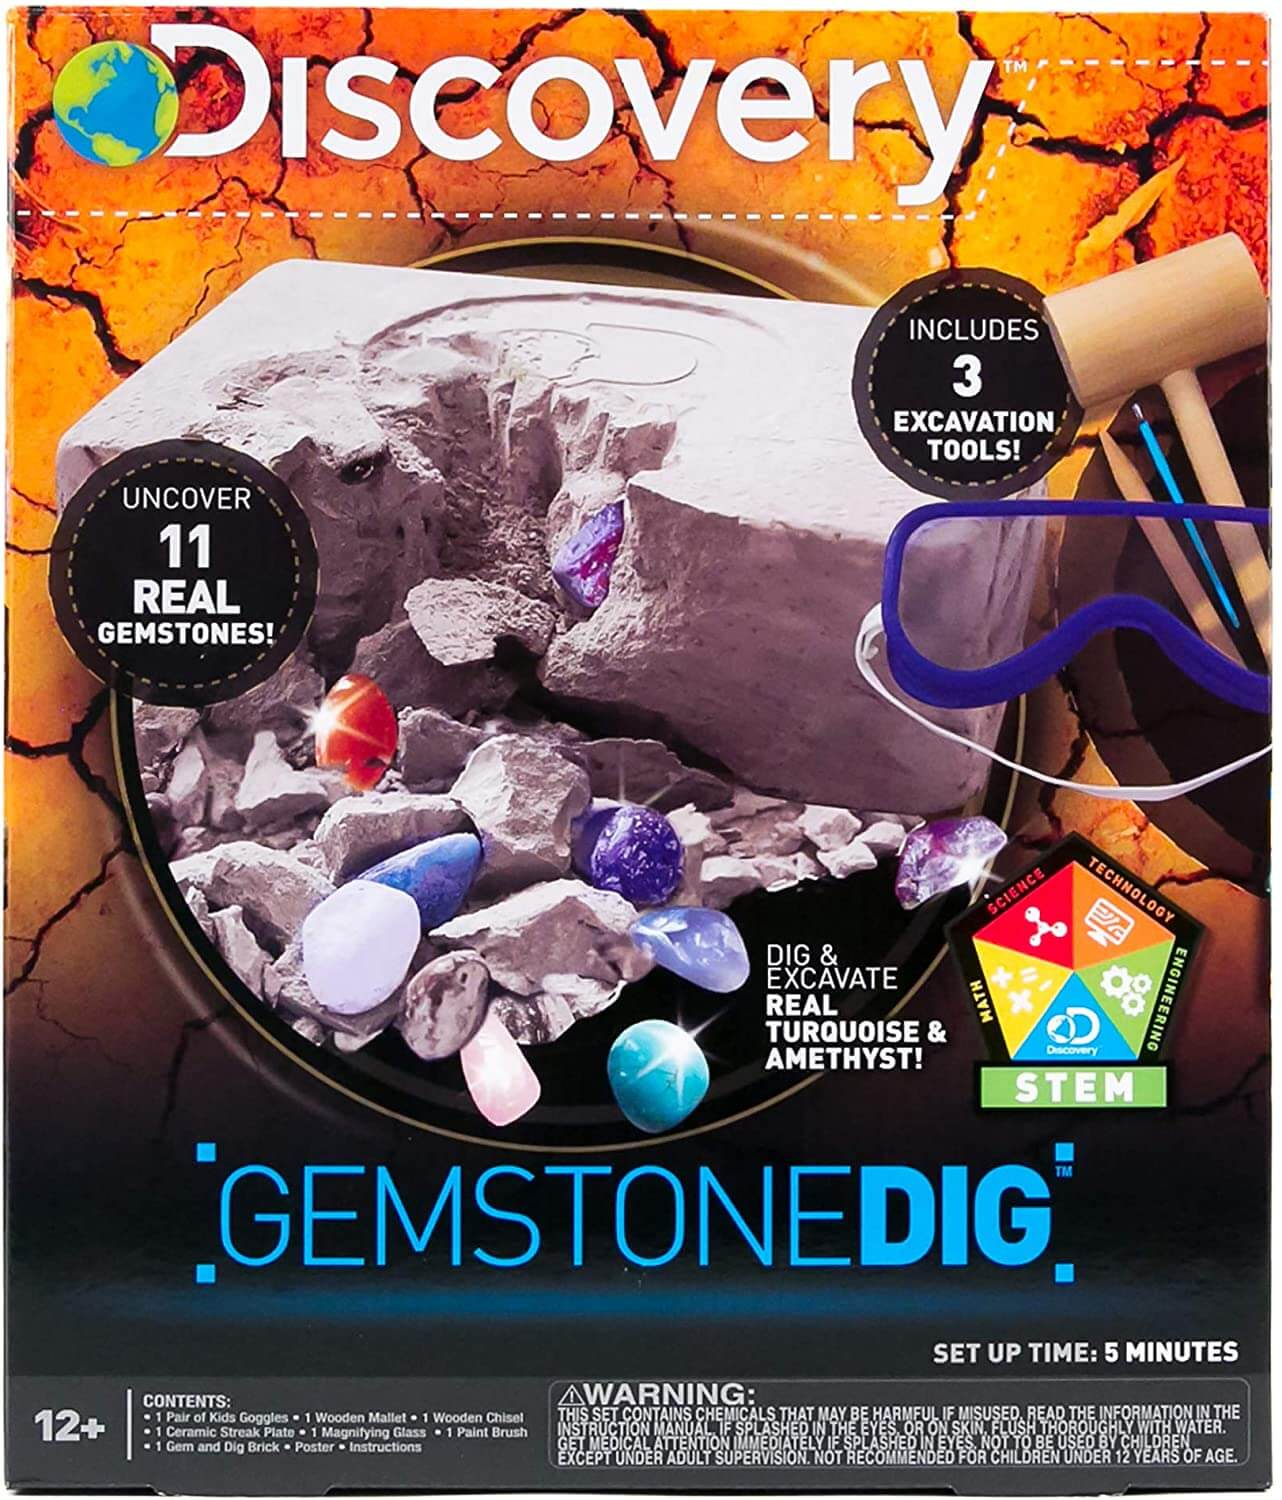 Discovery Kids Gemstone Dig Stem Science Kit by Horizon Group USA, Excavate, Dig & Reveal 11 Real Gemstones, Includes Goggles, Excavation Tools, Streak Plate, Magnifying Glass & More